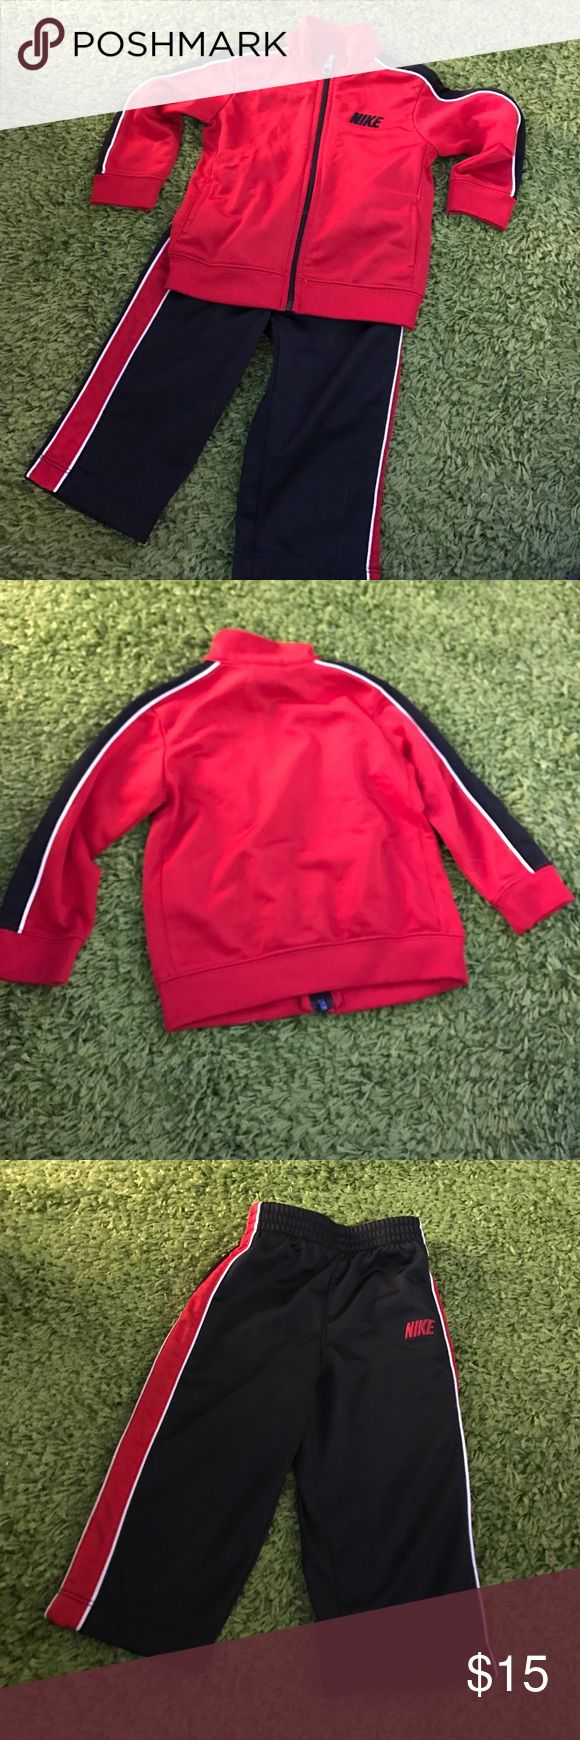 Nike Jogging Suit Lightly used, in great condition. Absolutely no damage or discolorations Nike Matching Sets